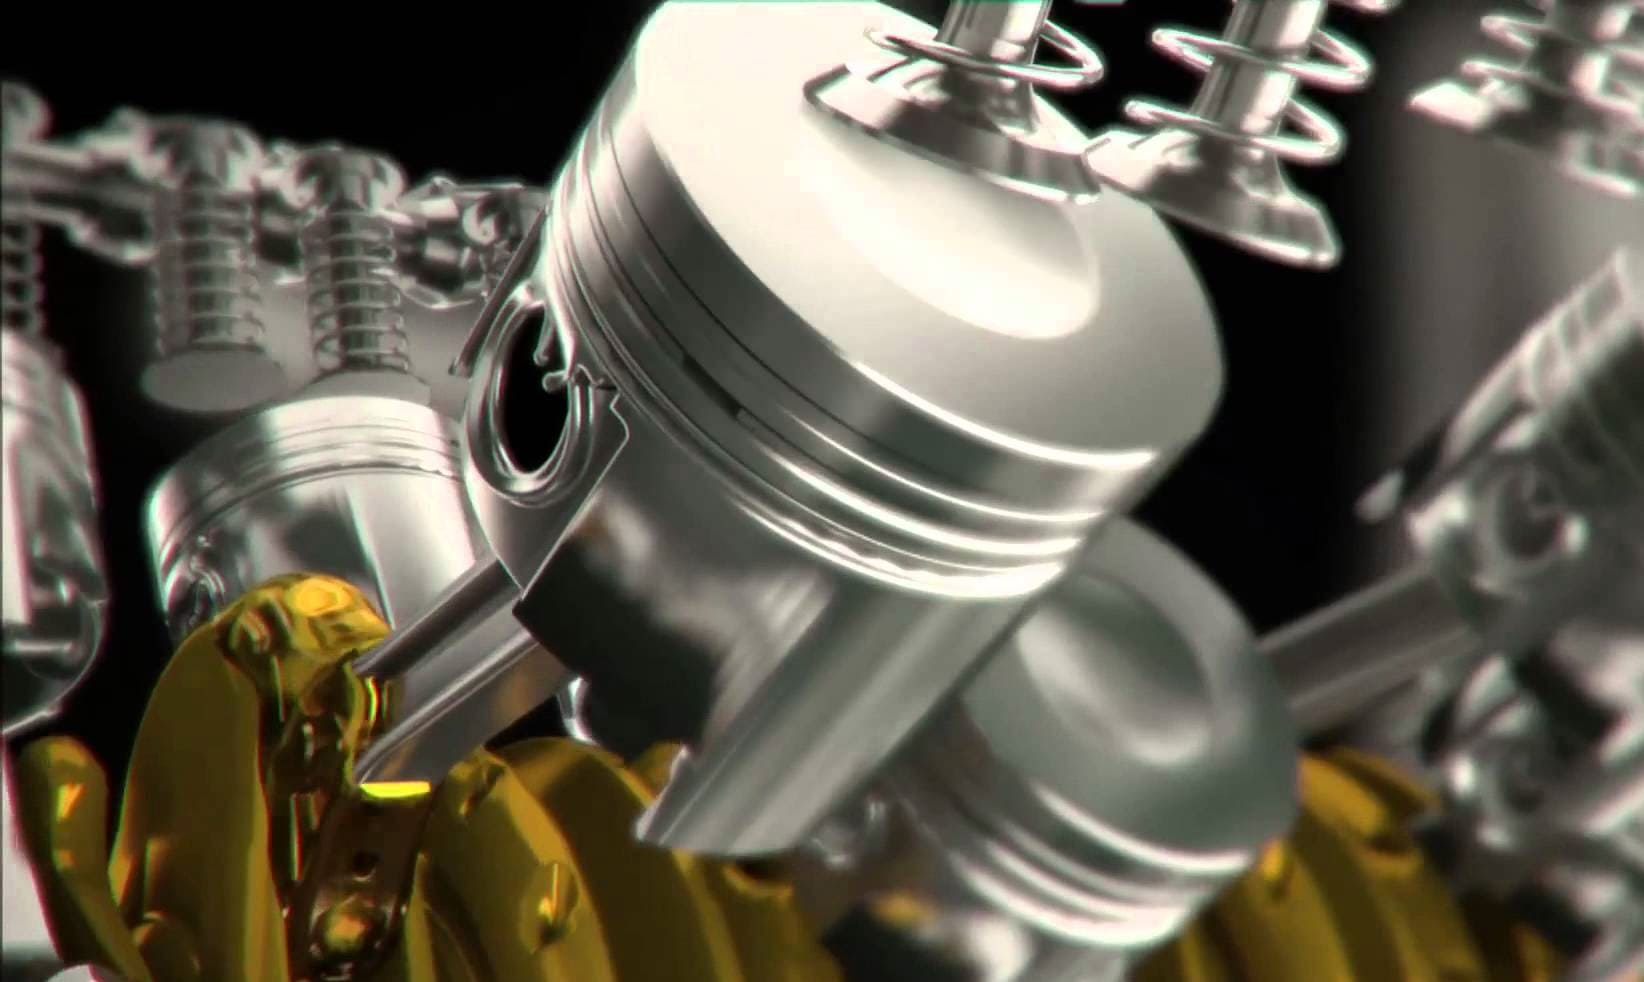 How to select engine oil